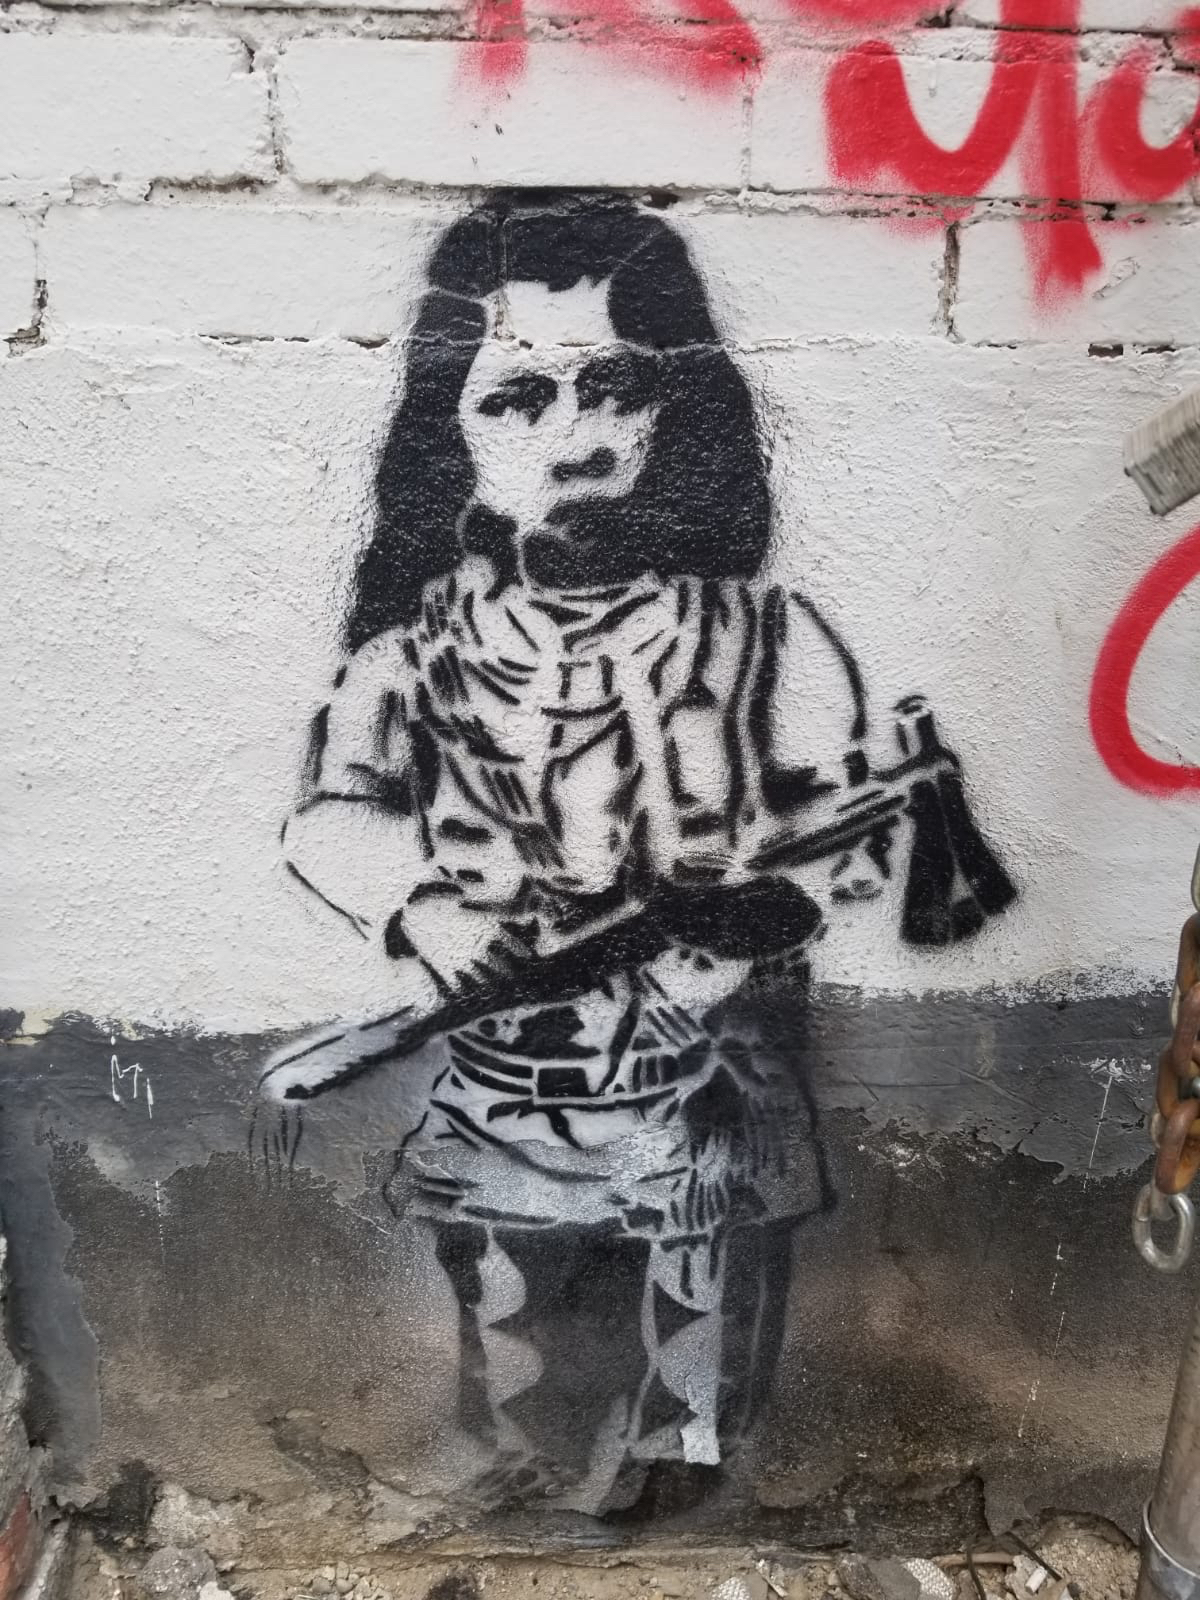 The Real Art In The Banksy Exhibit Isn T The Graffiti It S The